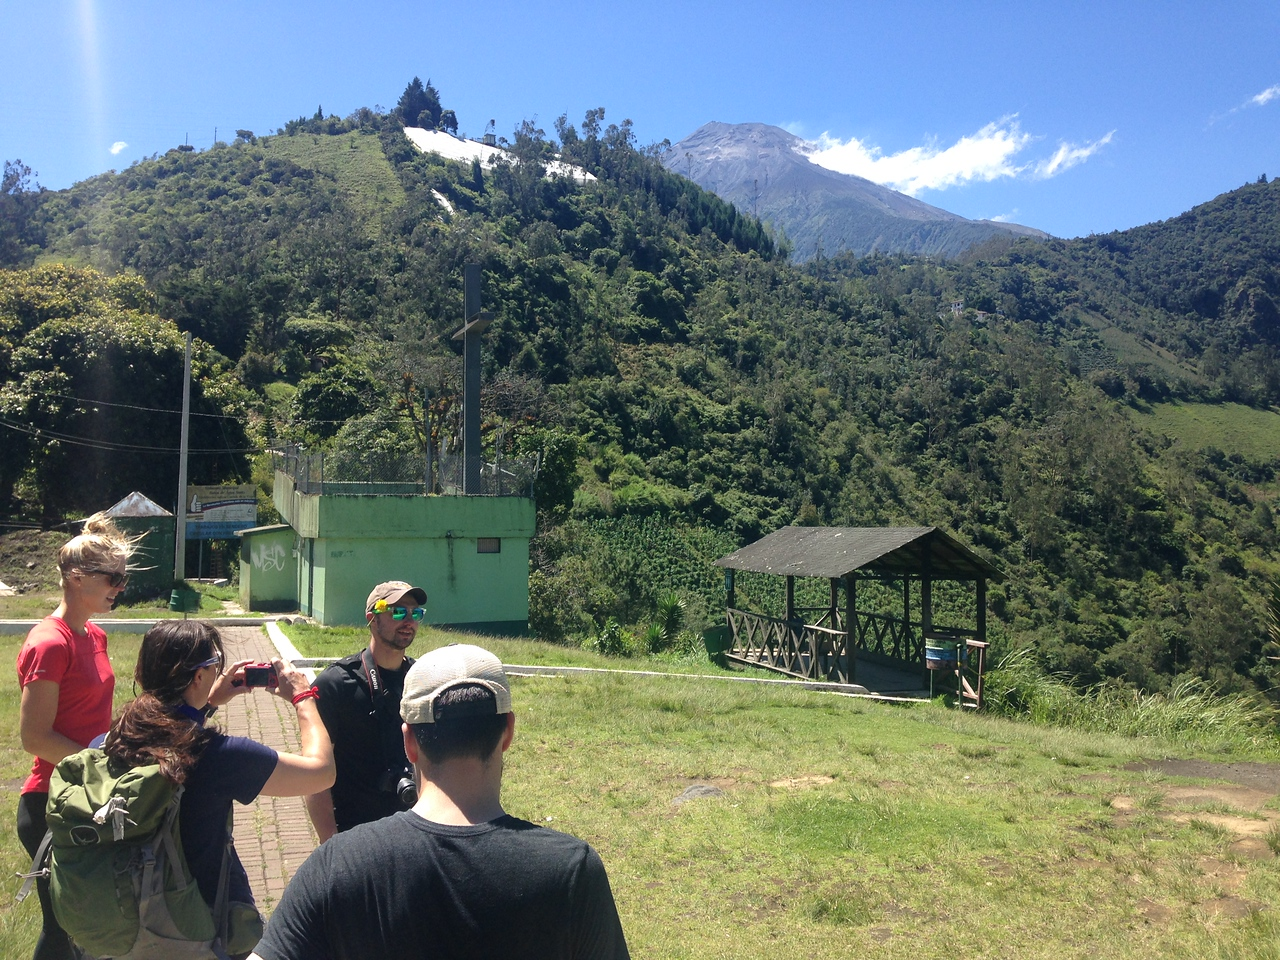 The team enjoys a break during a hiking day in Banos de Agua Santa. The very active volcano Tungurahua is in the background.